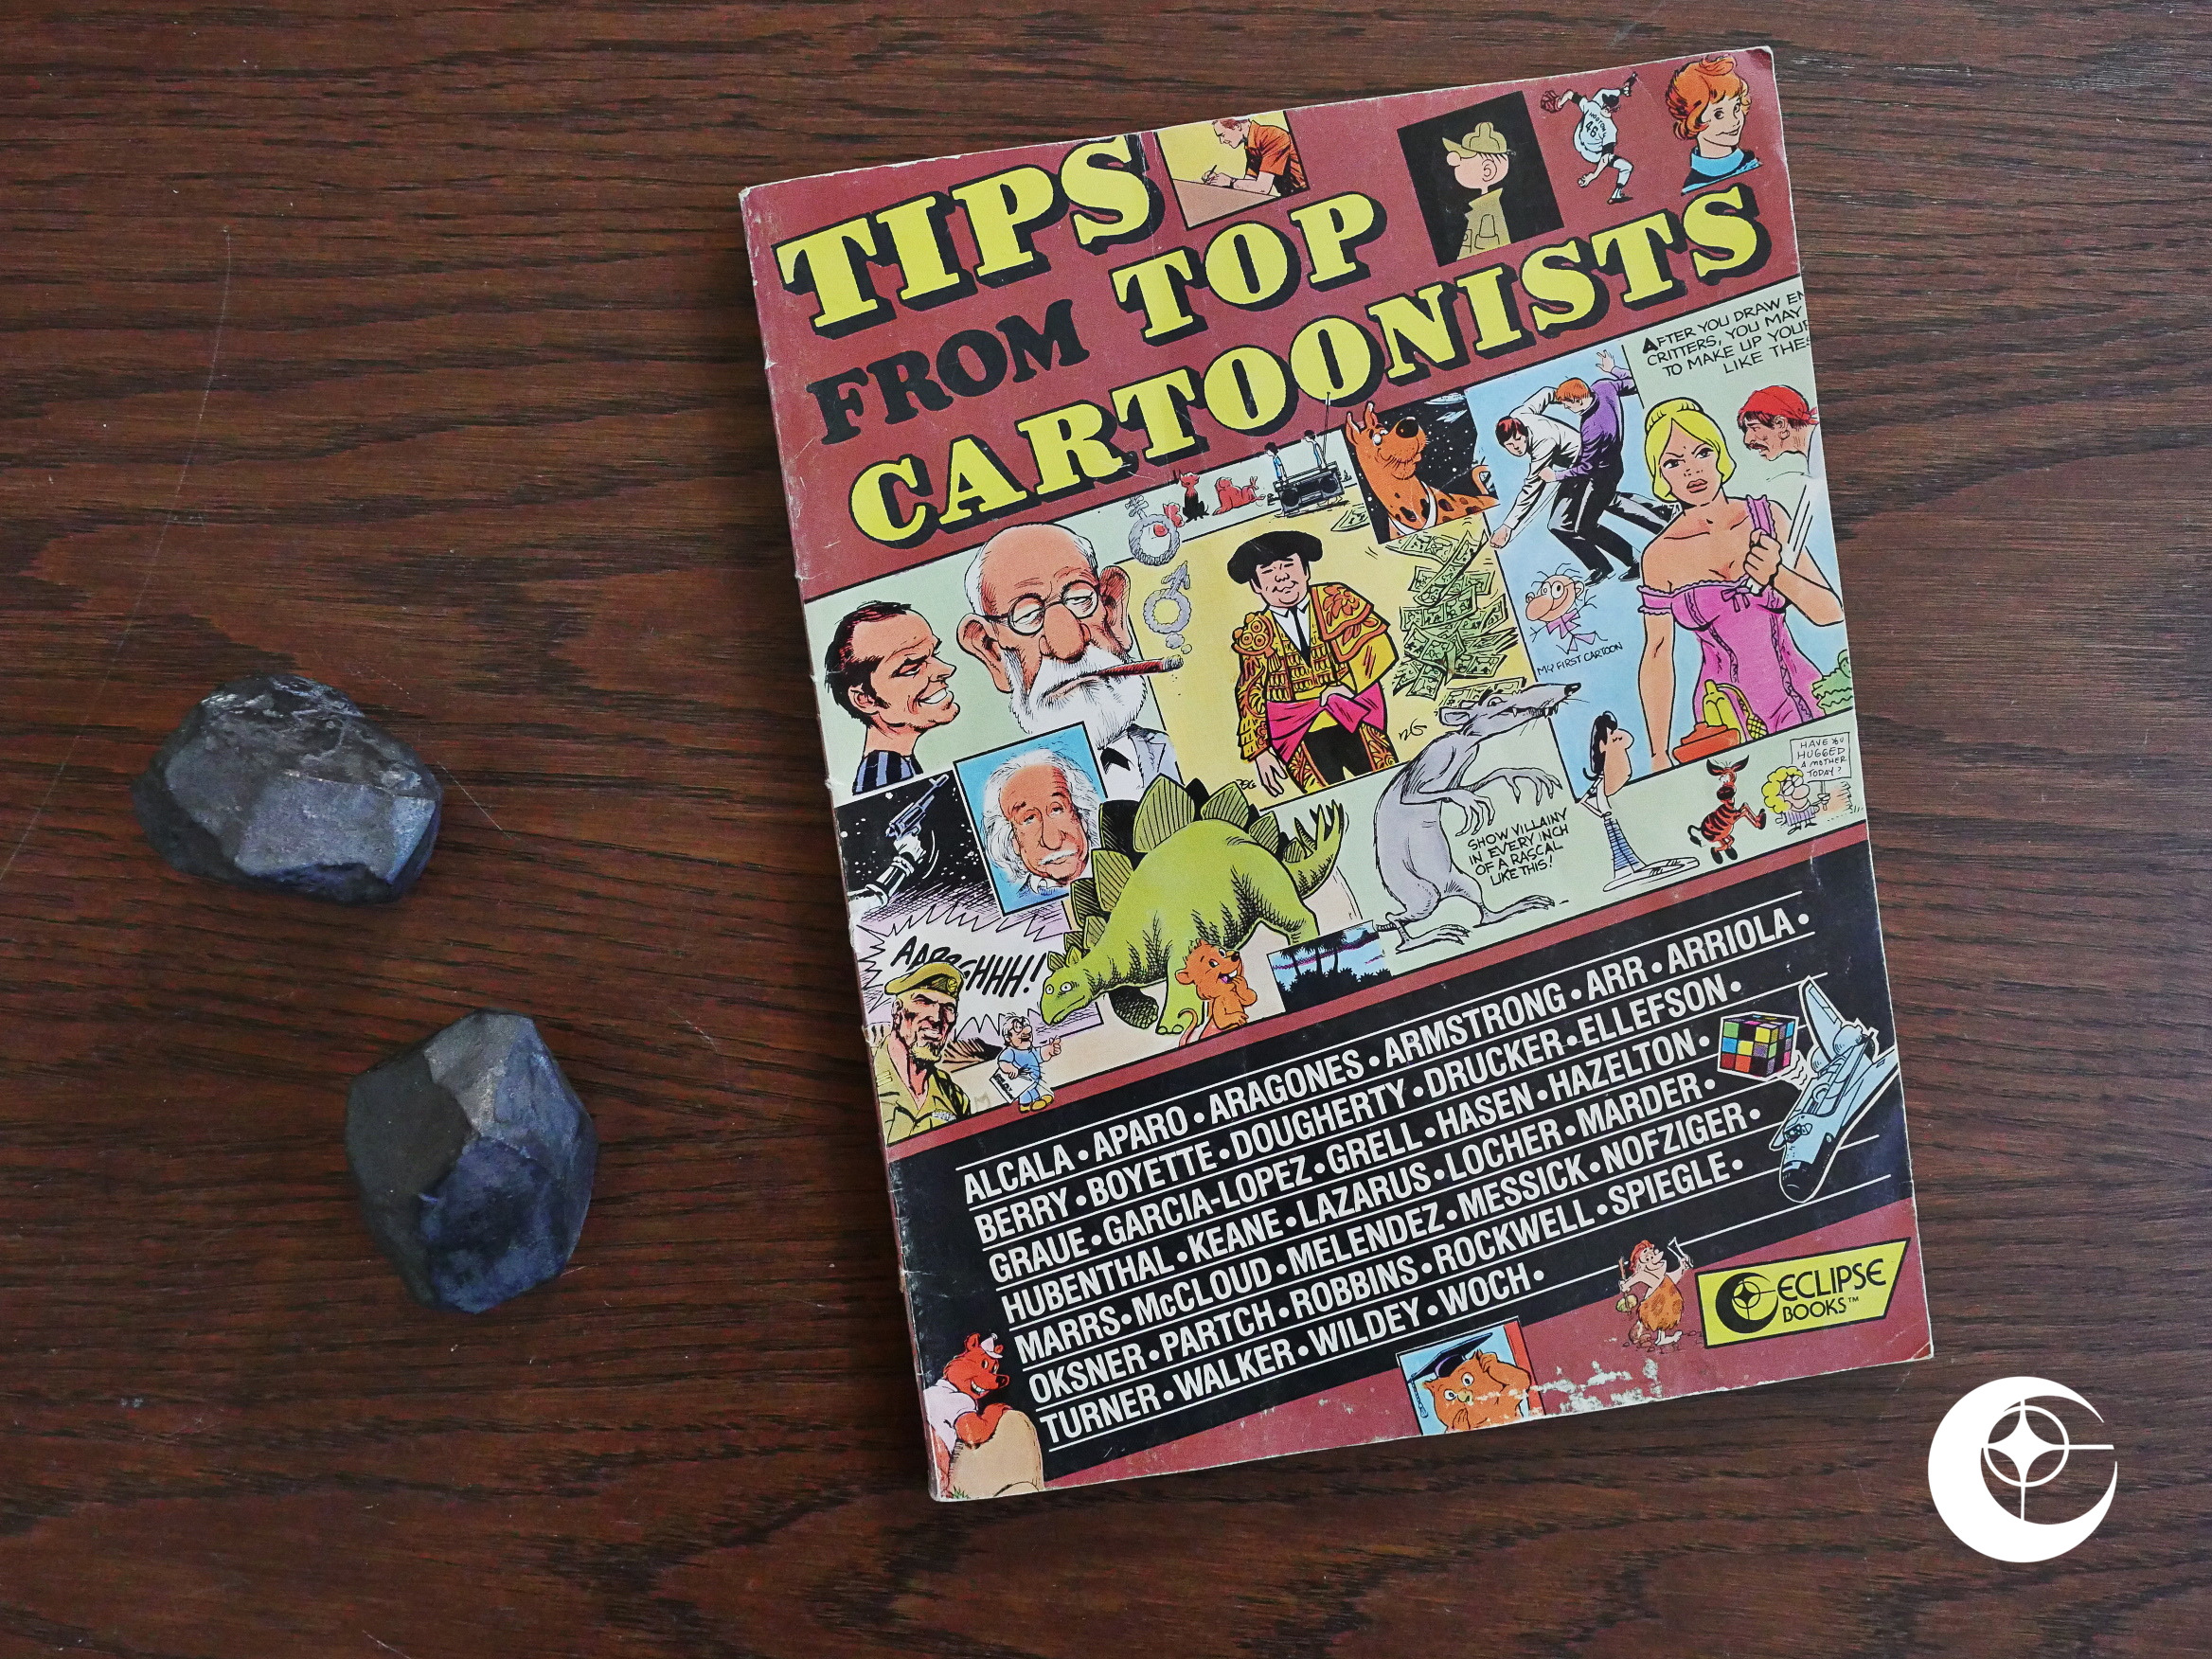 1988 Tips From Top Cartoonists Total Eclipse Hey Baby My Frist Book Softbook Were A Bit Out Of Sequence Here Im Playing Catch Up With Few Books That Didnt Arrive In Time For Me To Blog About Them When Cdo Said